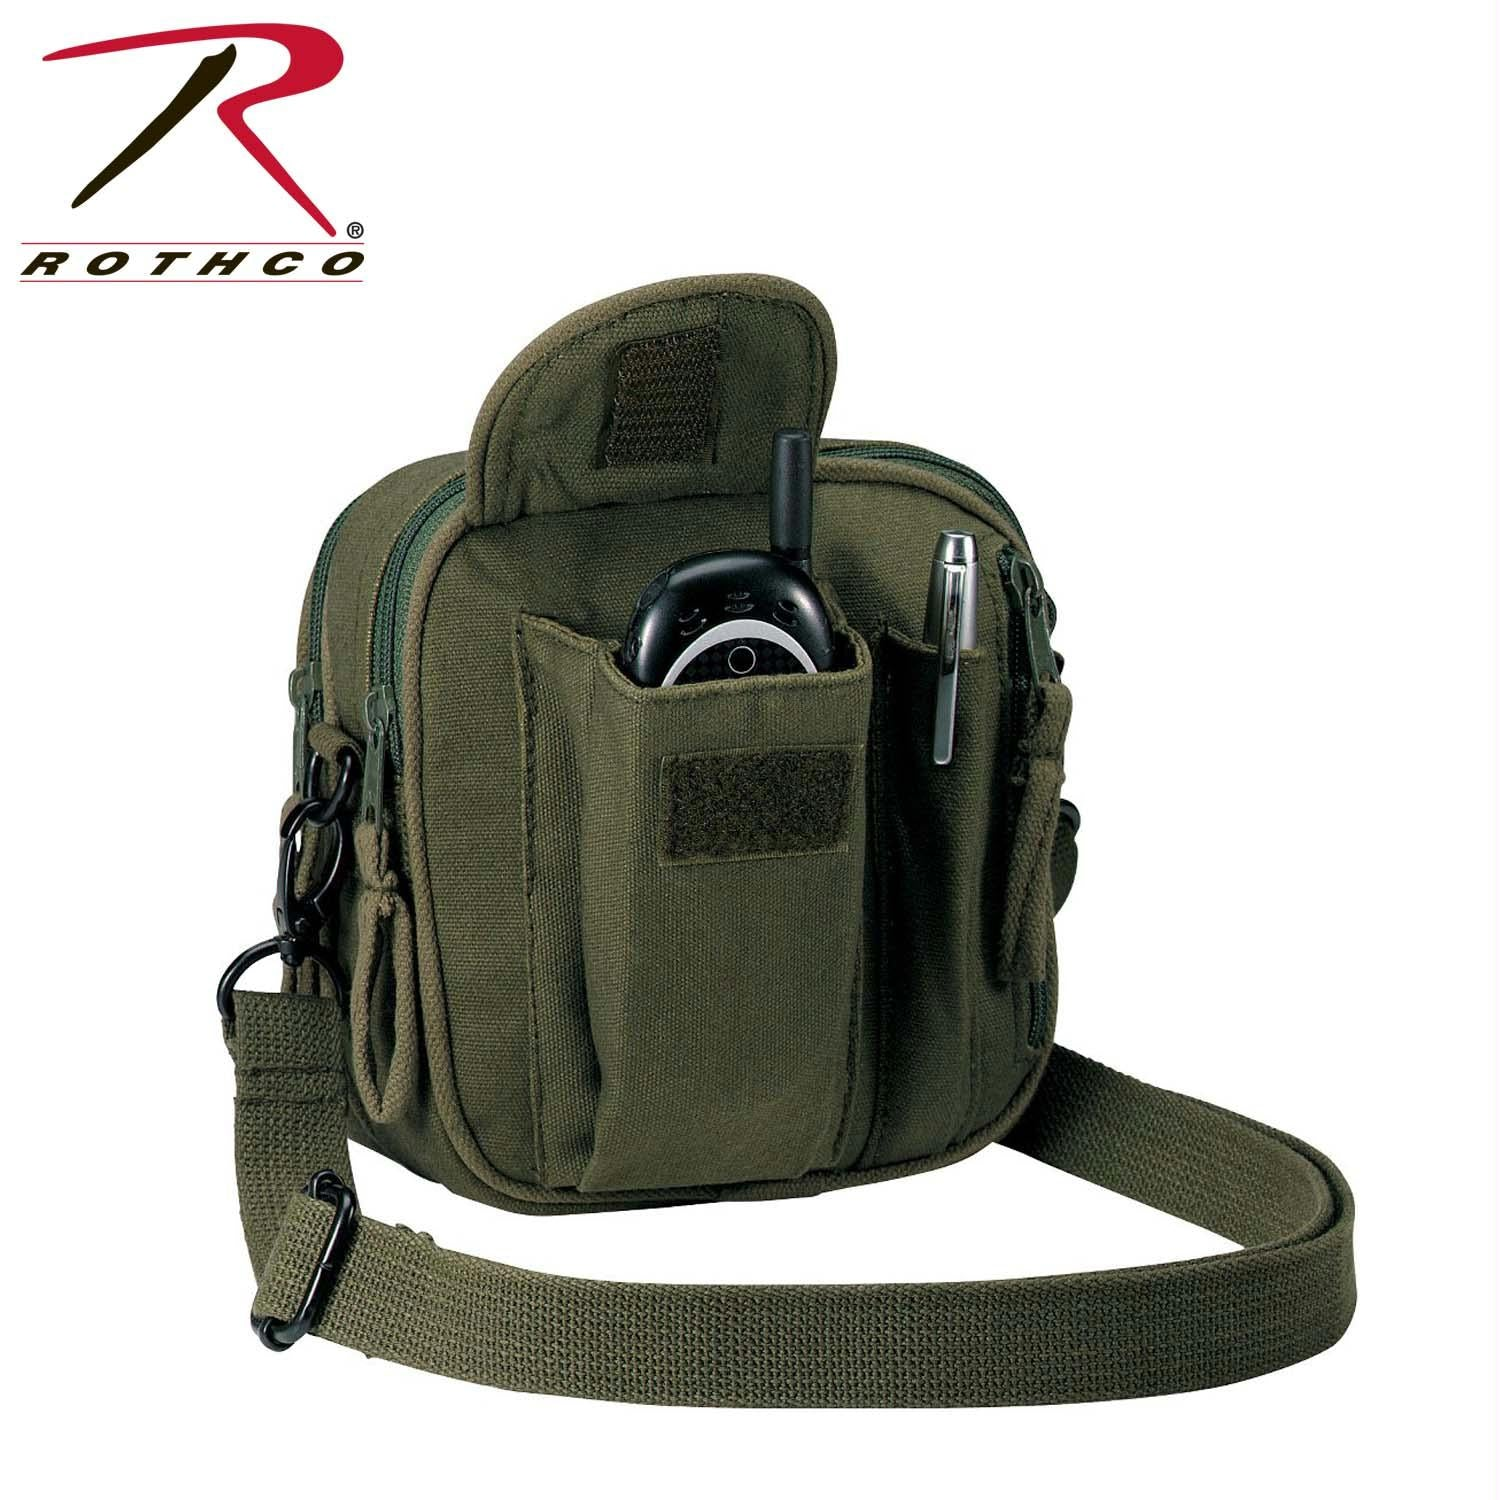 Rothco Canvas Organizer Bag - Olive Drab